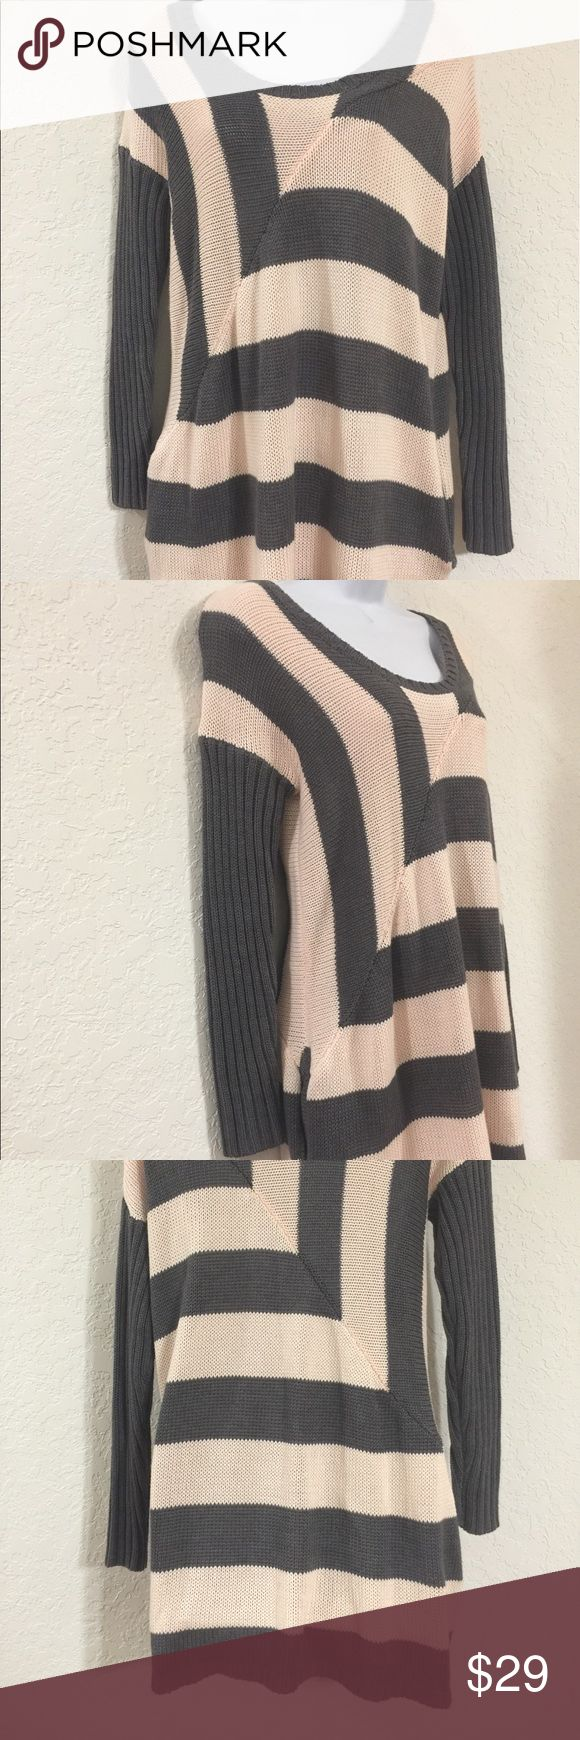 """Nasty Gal knitted peach gray sweater Great Nasty agal knitted pullover sweater. Side pockets and fitted. Awesome with skinny jeans or shorts. Chest 22"""", Length 32"""", sleeve 19"""". Great condition. Peach/gray. Nasty Gal Sweaters Crew & Scoop Necks"""